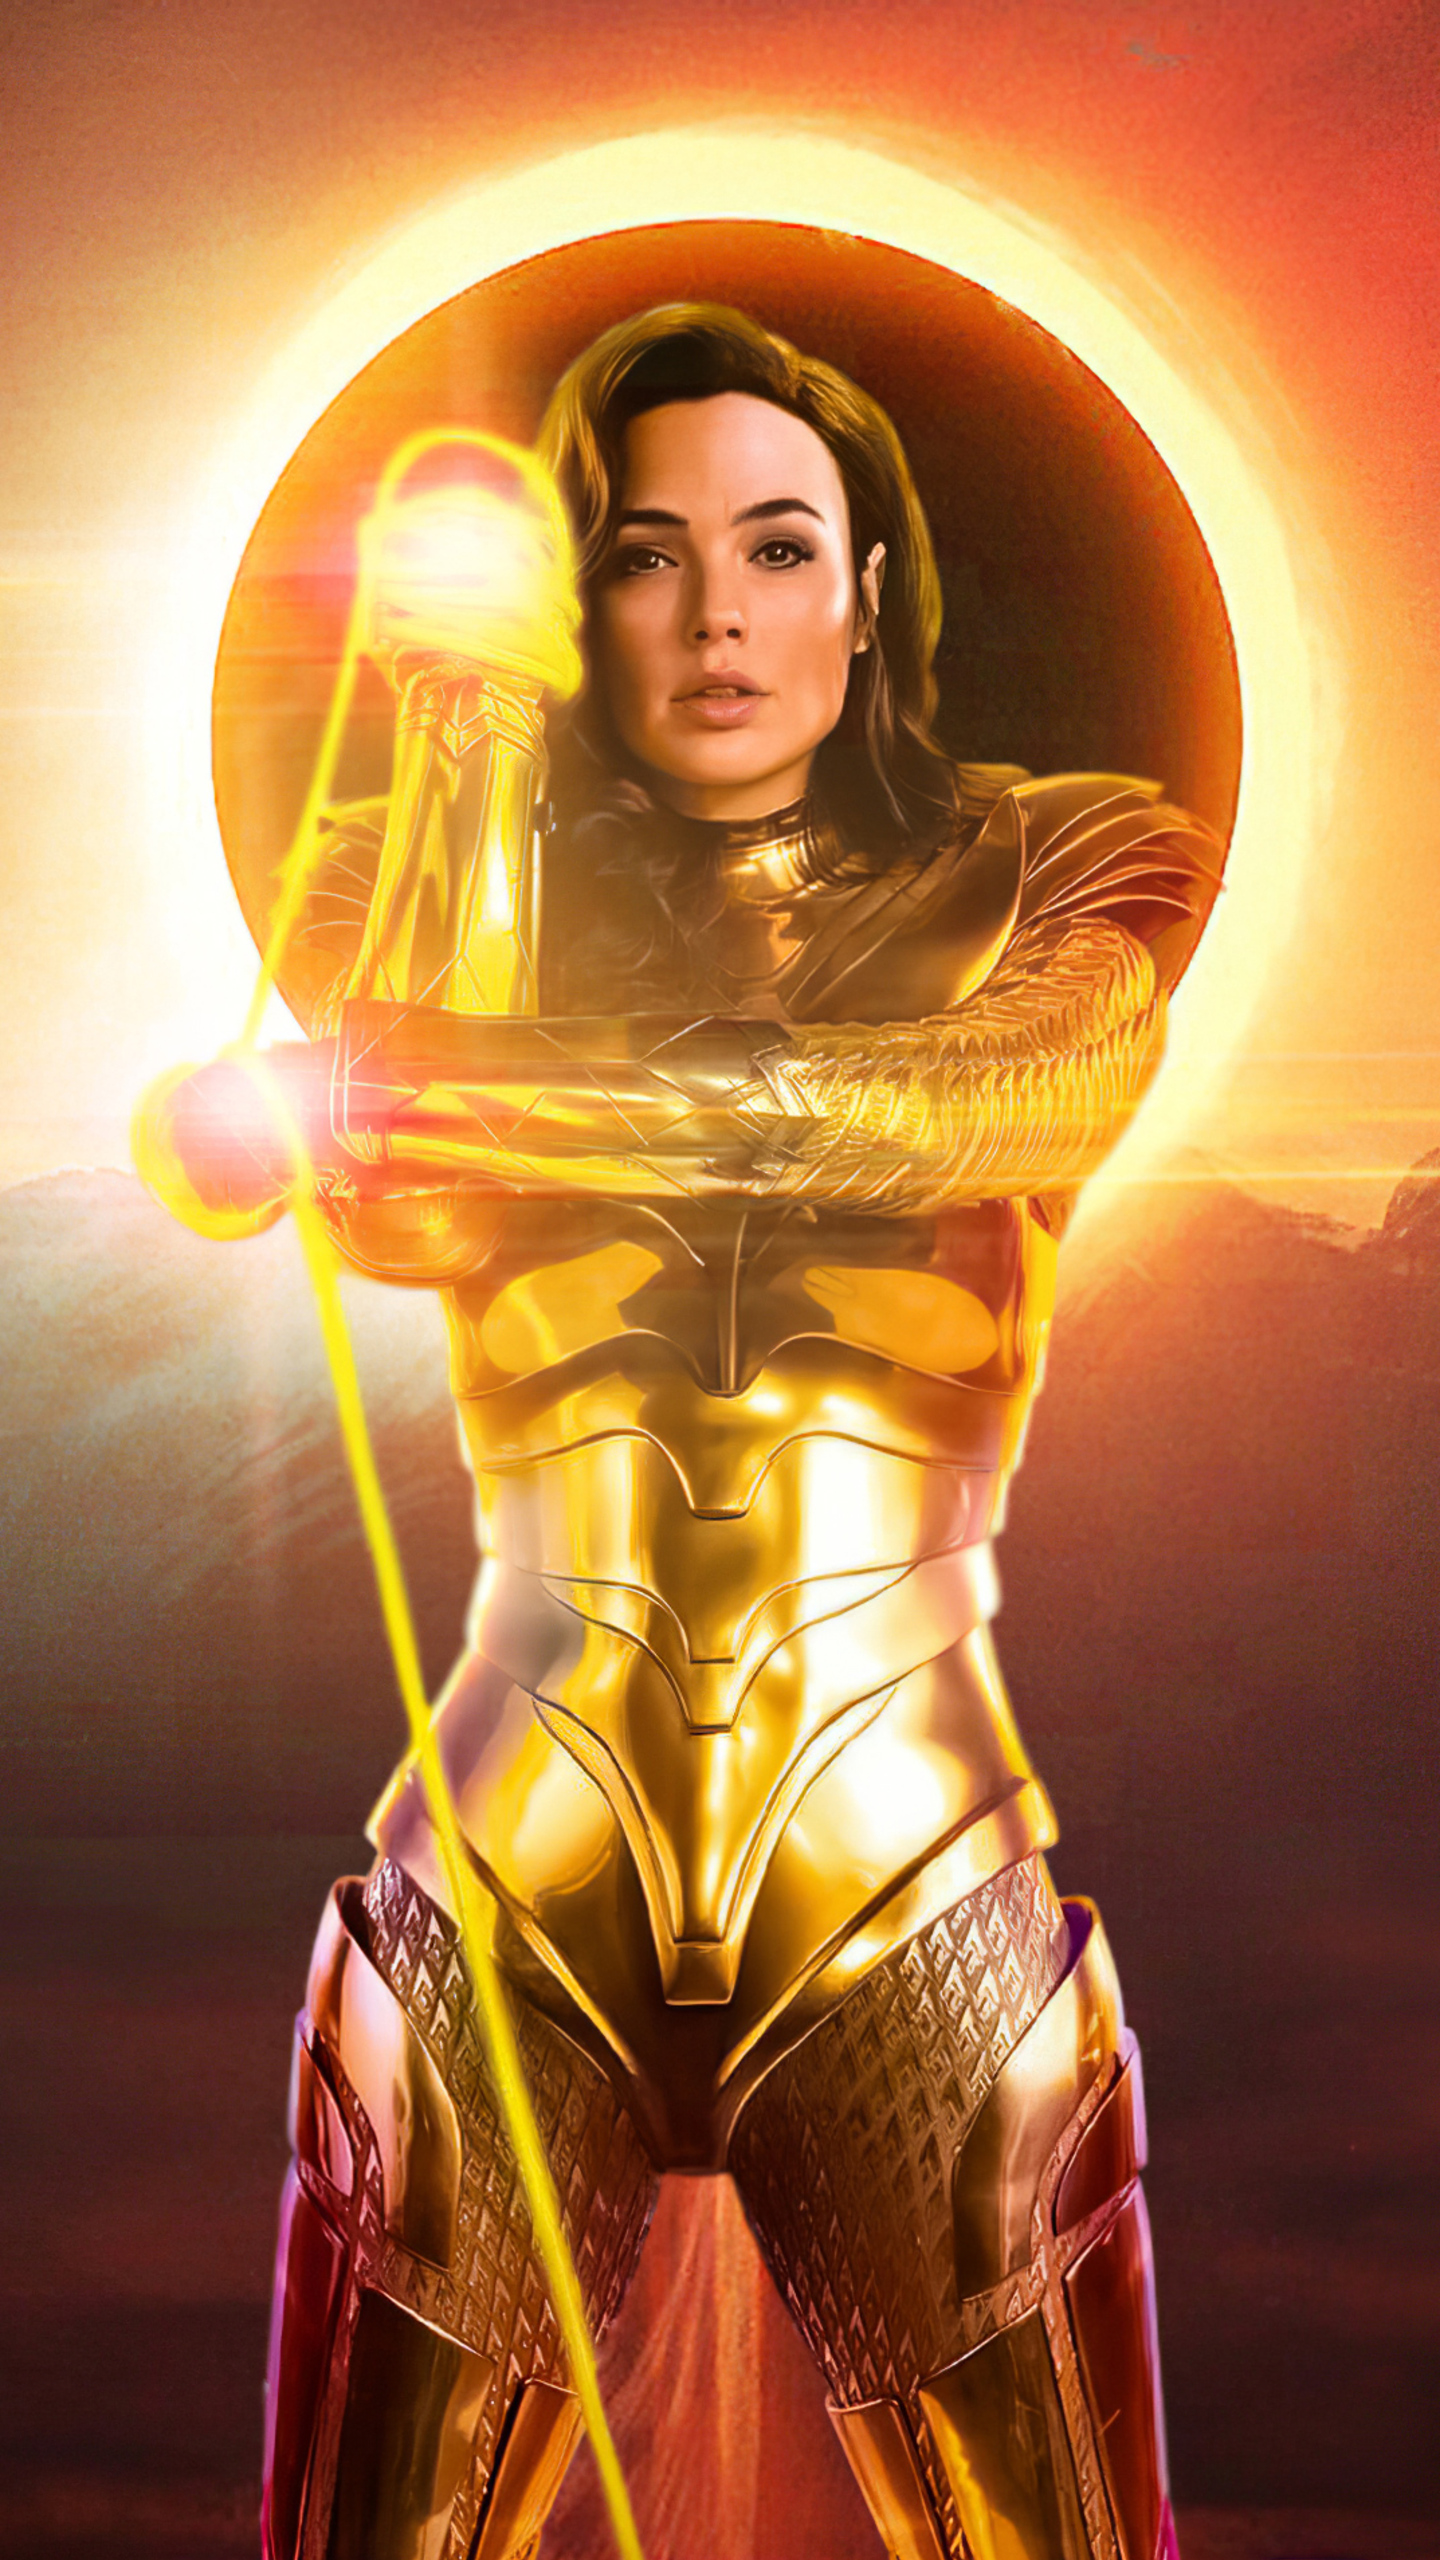 wonder-woman-1984-gal-gadot-movie-wg.jpg